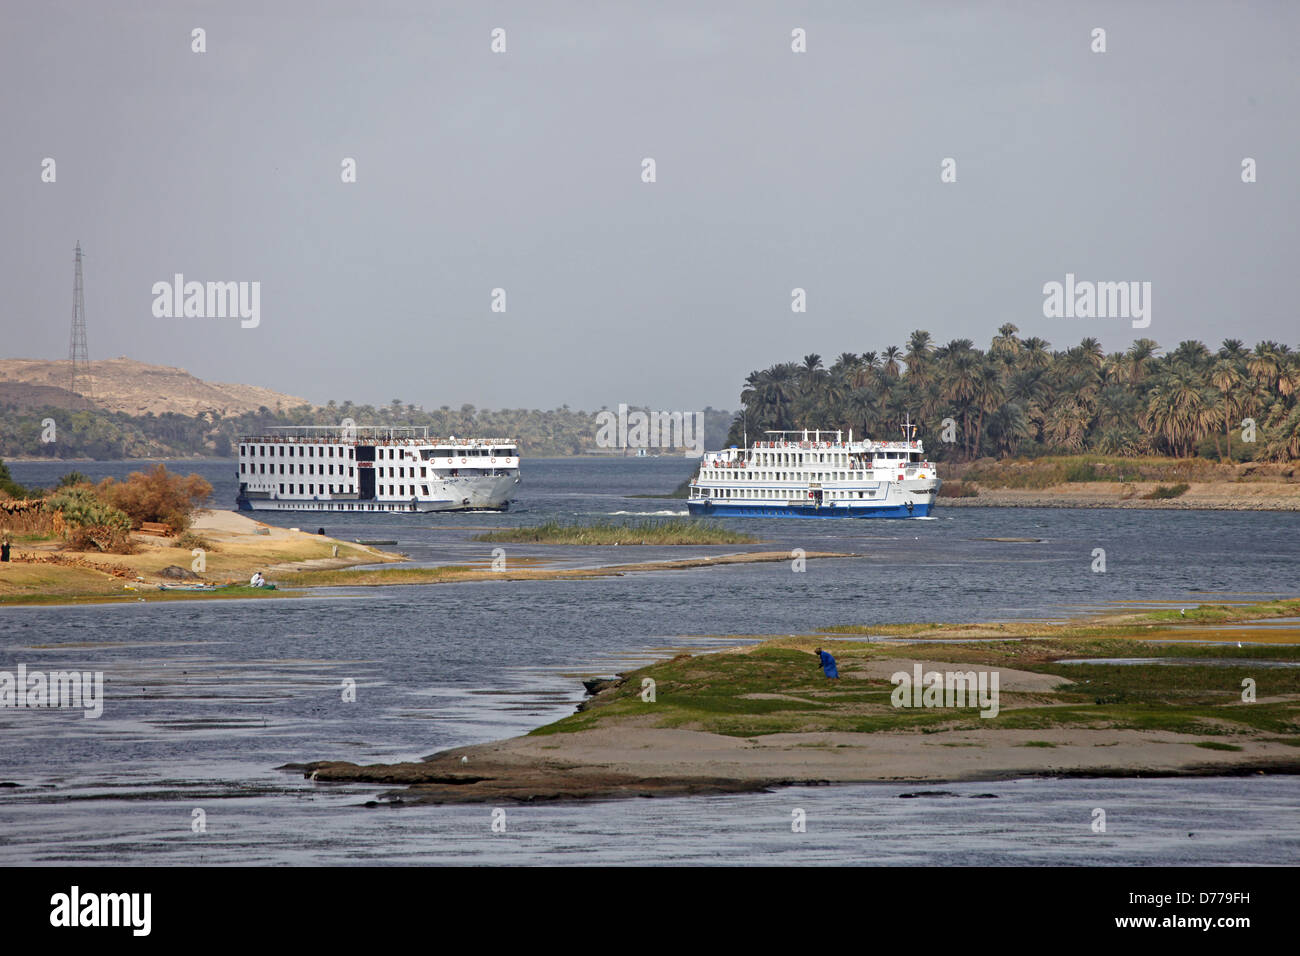 CRUISE LINERS RIVER NILE EGYPT 09 January 2013 - Stock Image